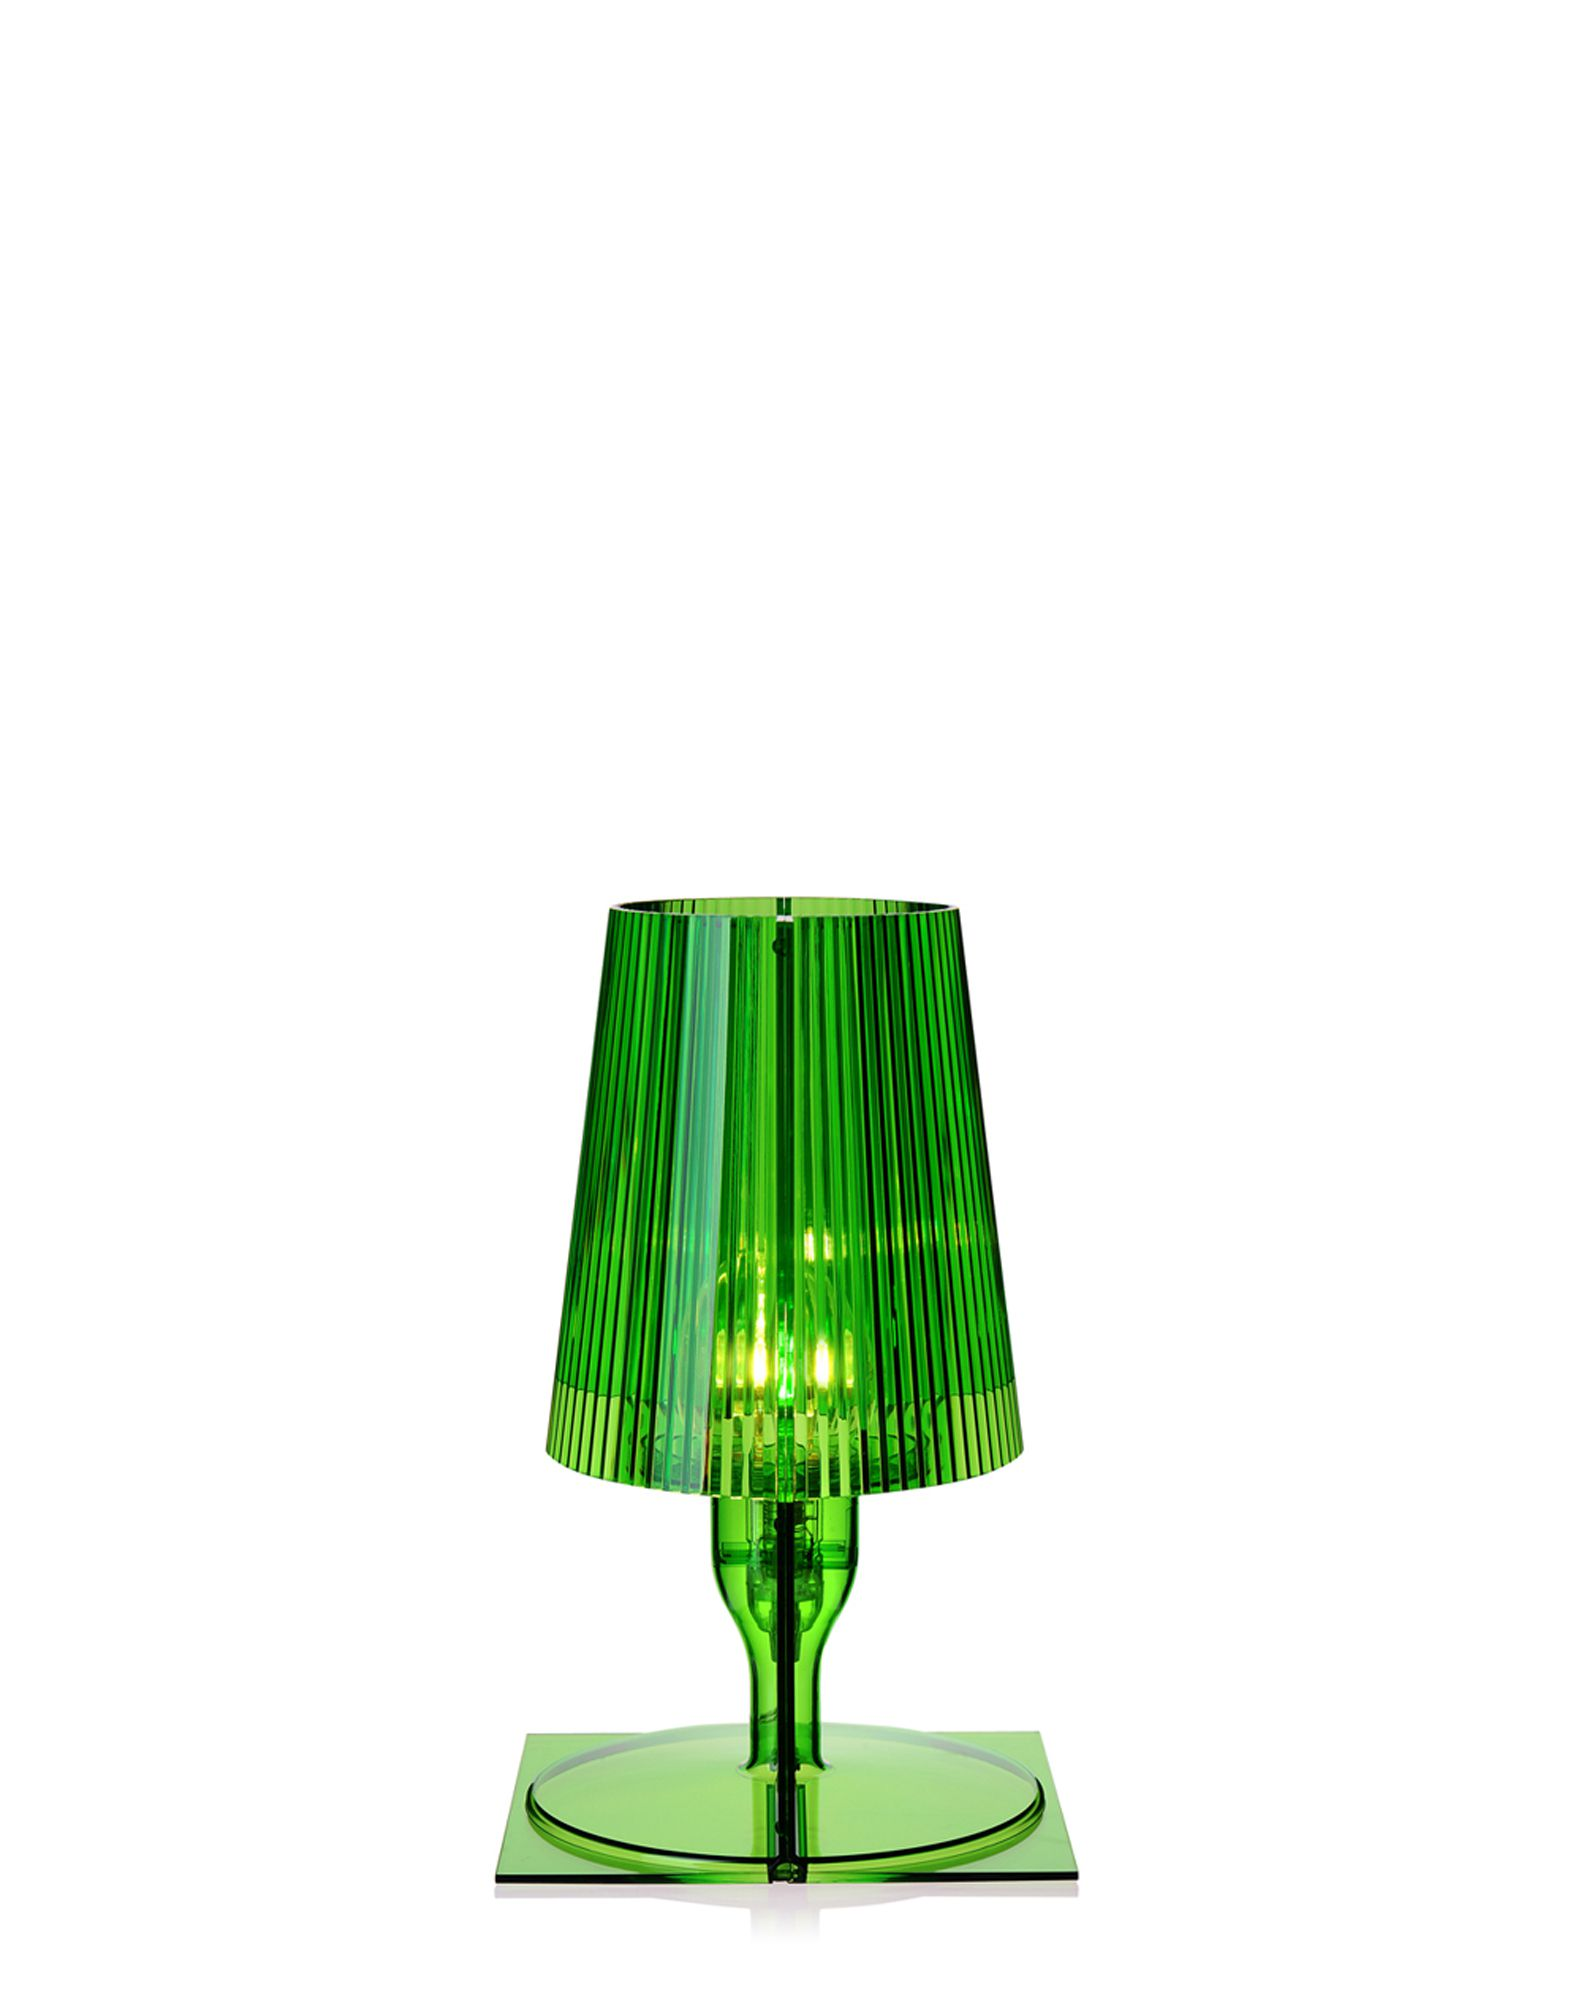 Kartell table lamp take green newformsdesign table lamps kartell table lamp 9050 take green kartell table lamp 9050 take green geotapseo Choice Image